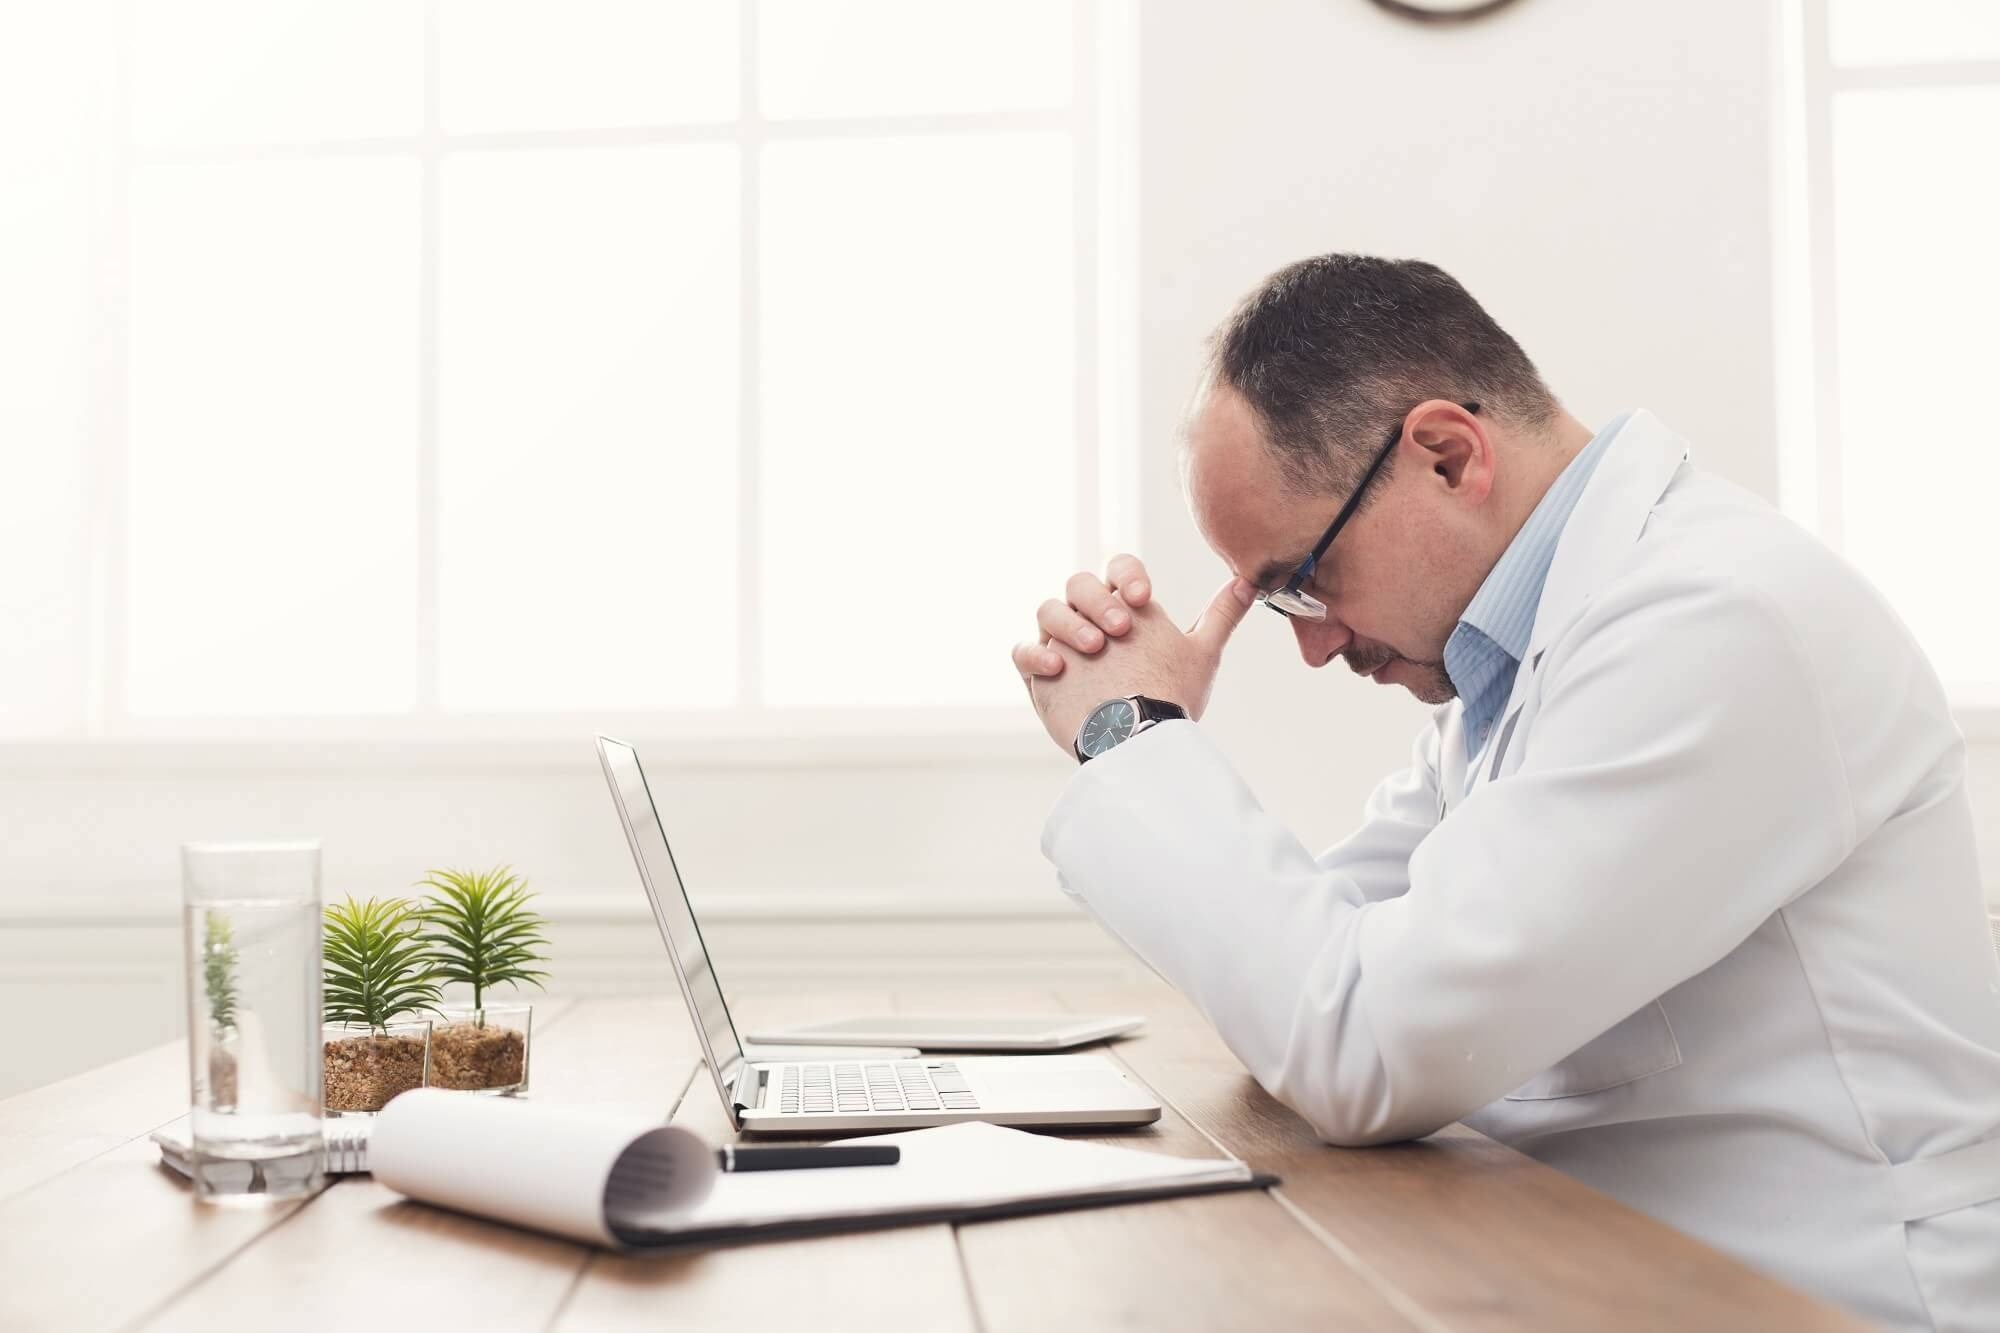 HIT-Related Stress Linked to Burnout Among Physicians